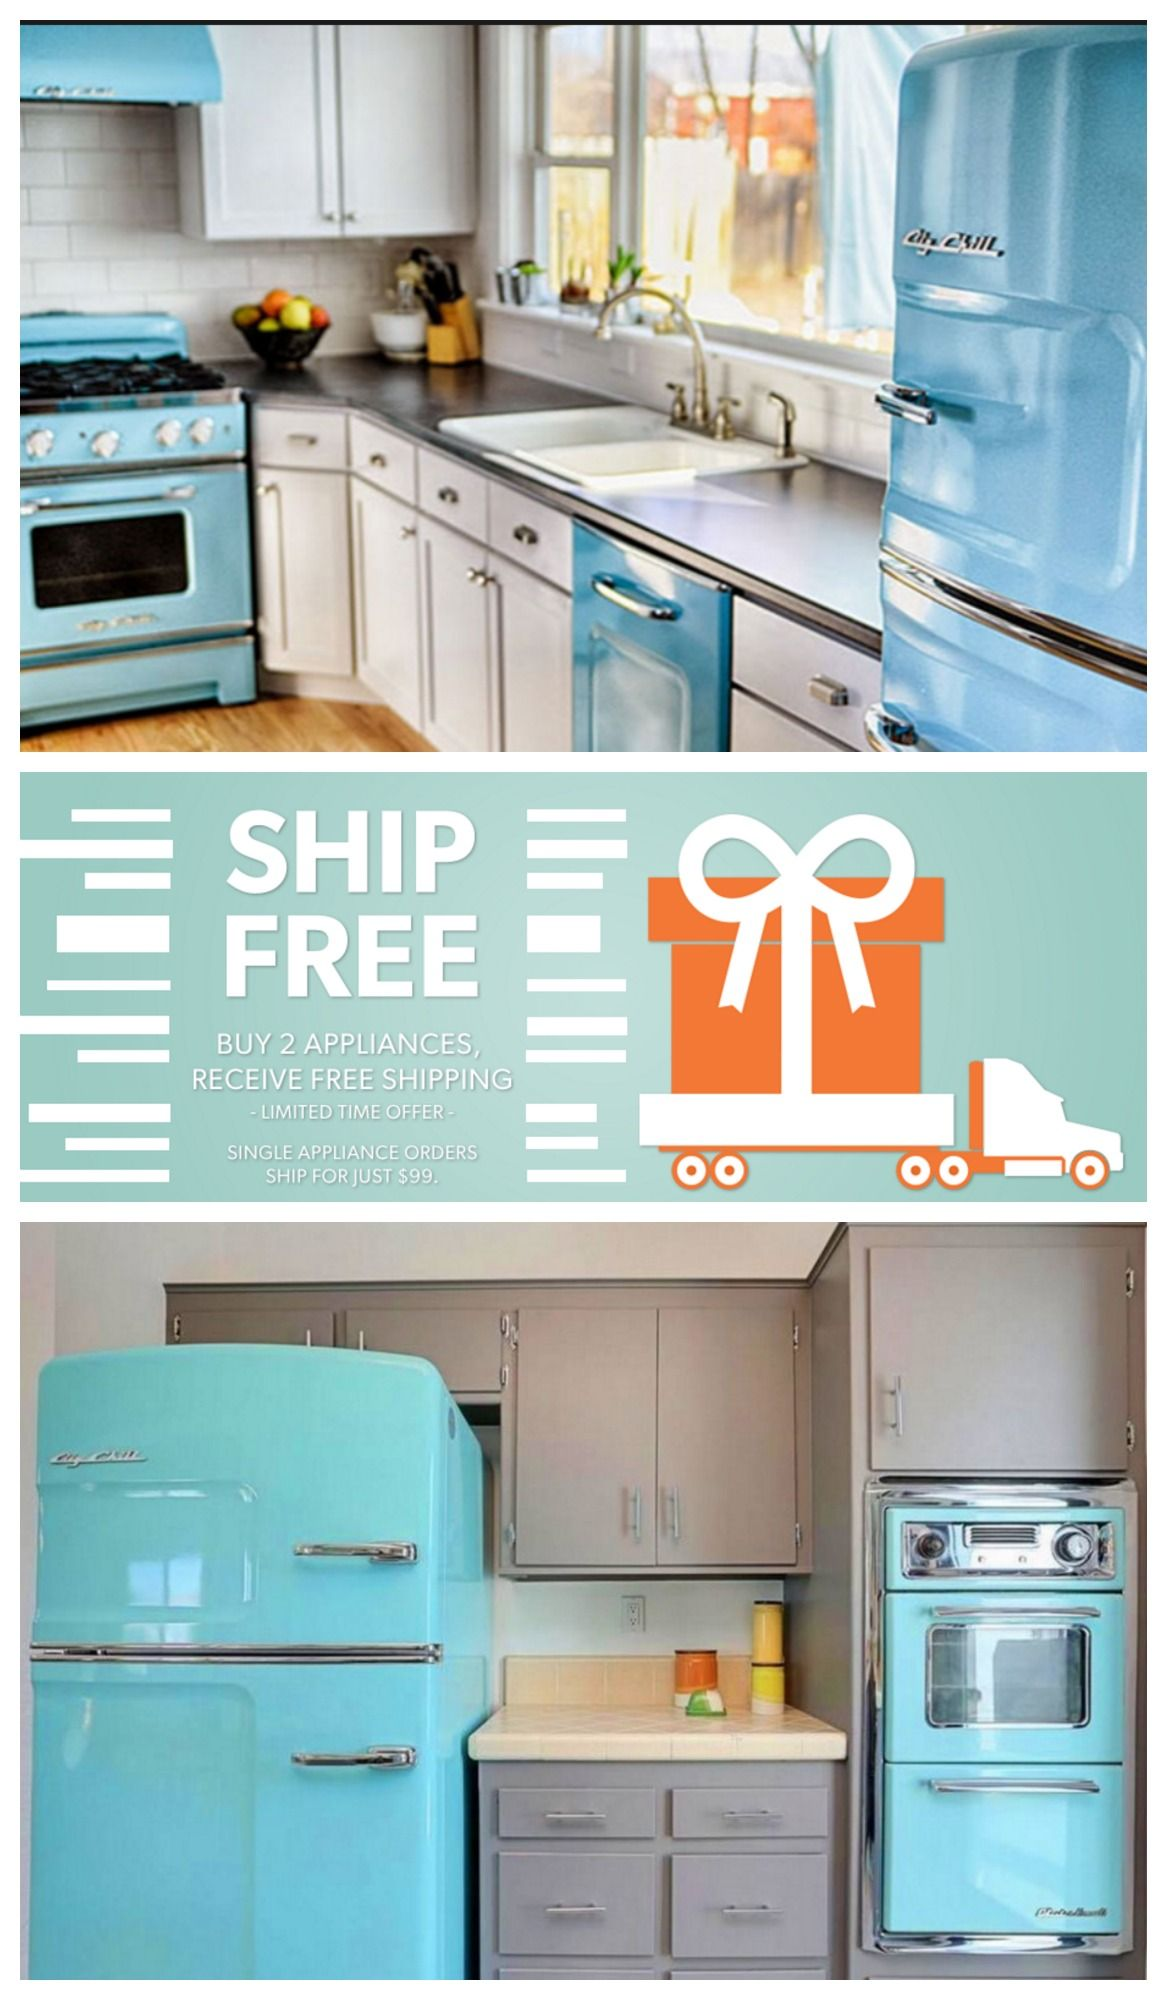 SHIP FREE! Buy 2 Big Chill appliances and receive FREE shipping ...